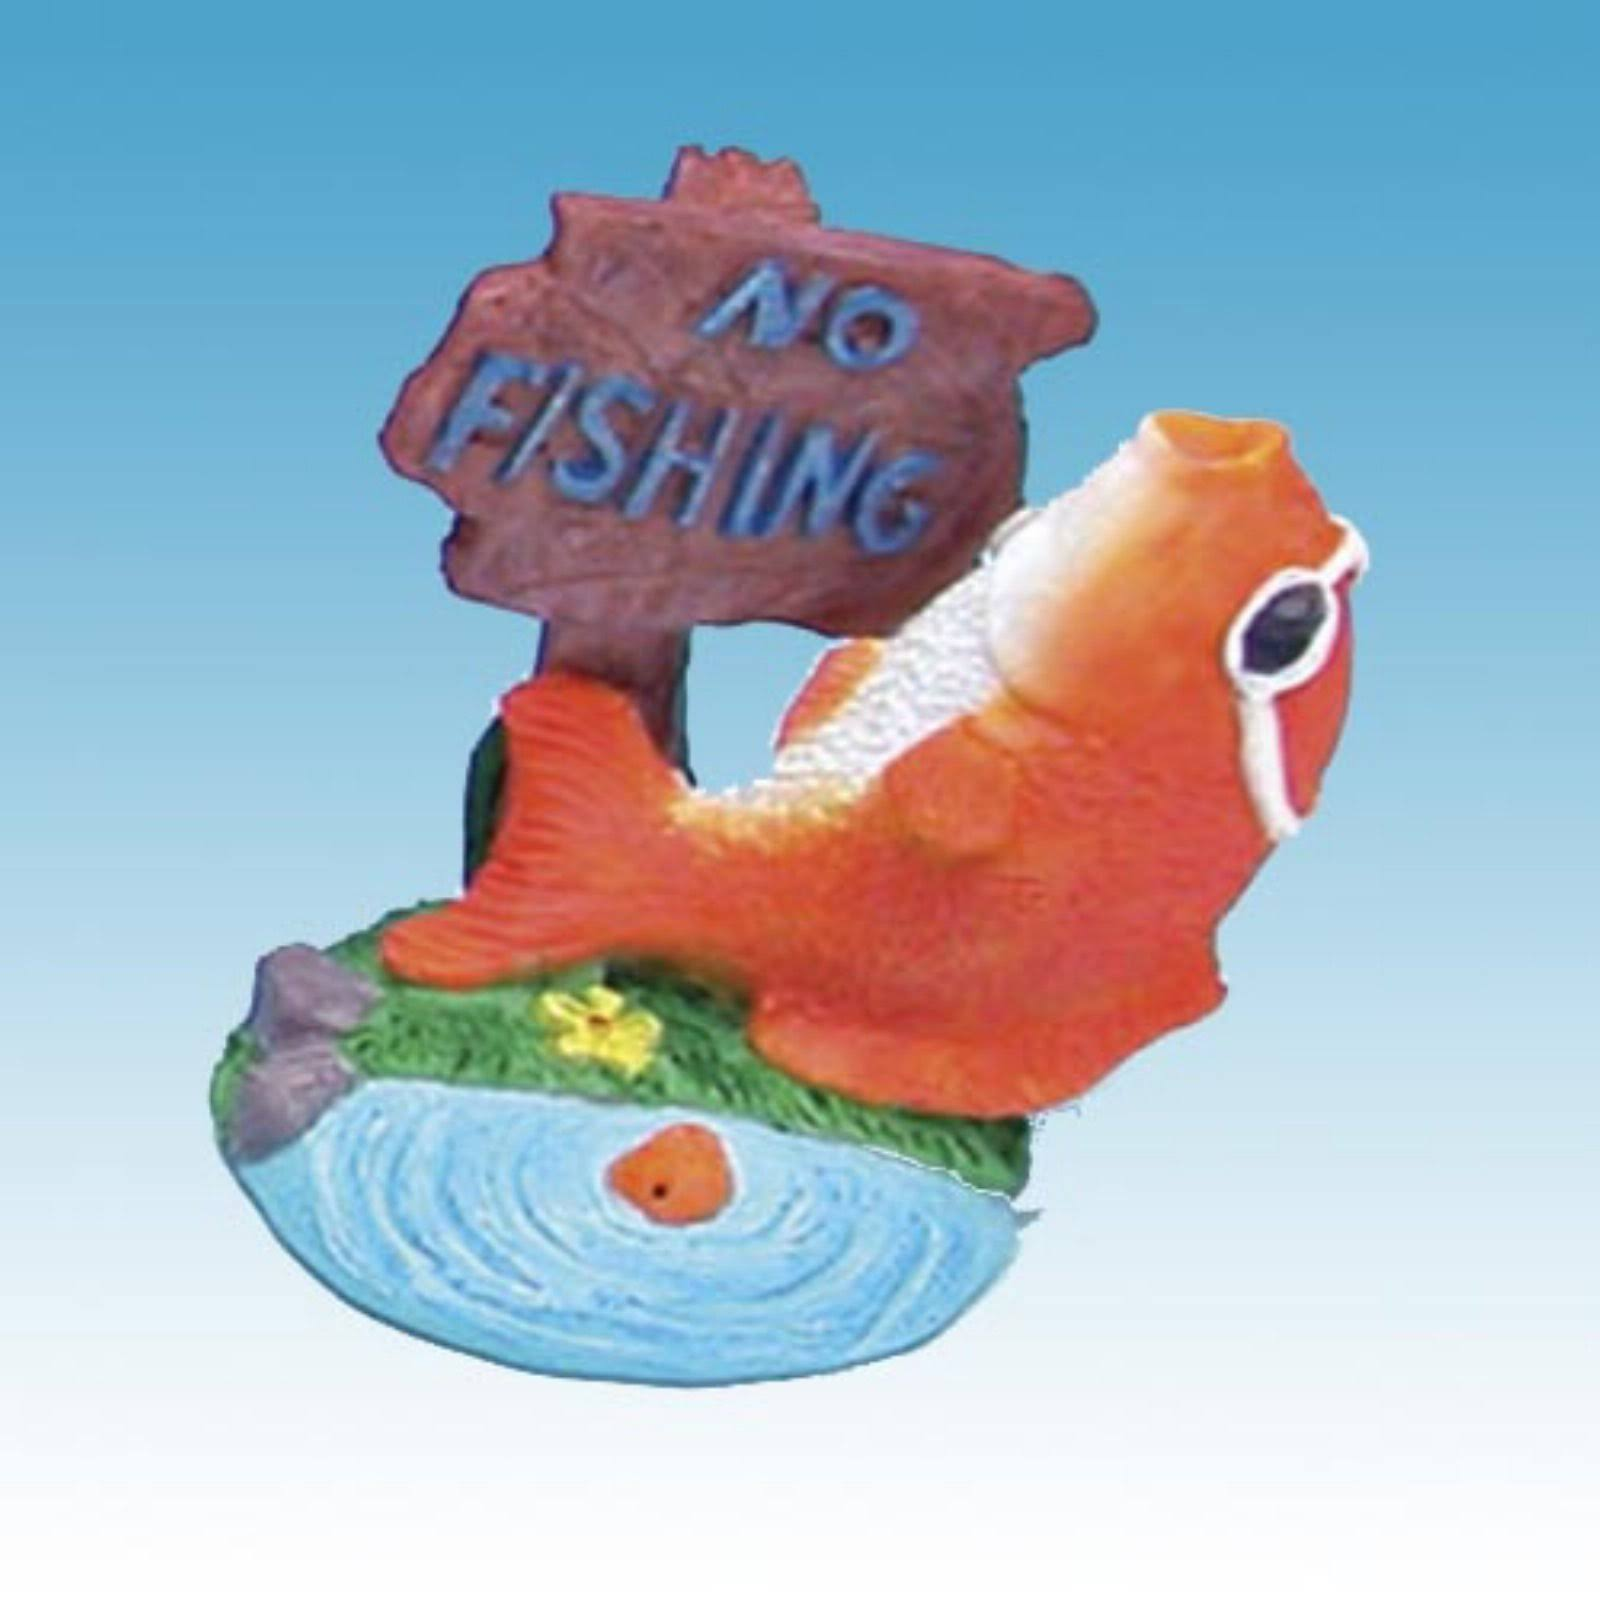 Penn Plax Mini No Fishing Aquarium Ornament